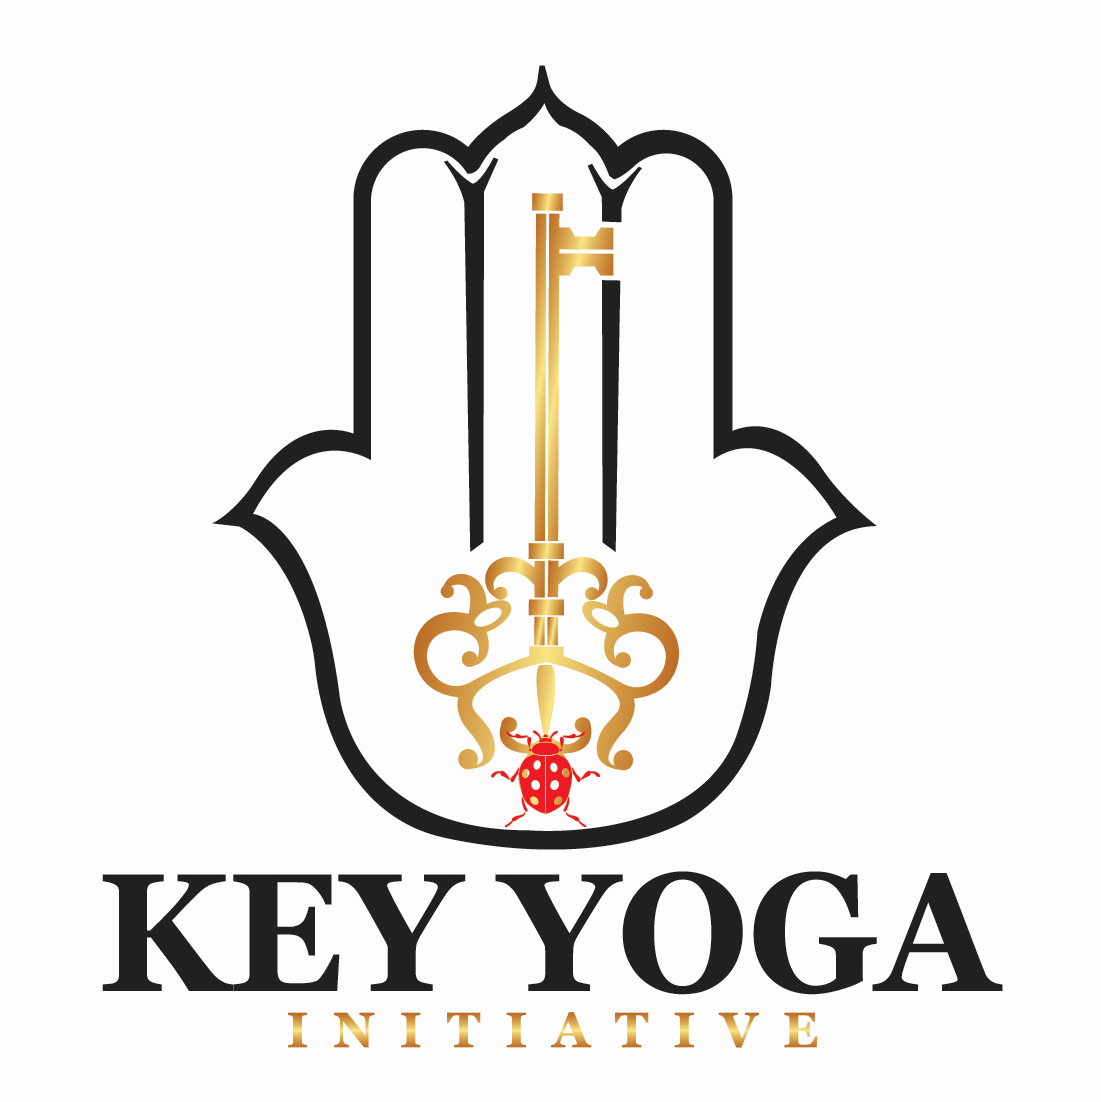 The Key Yoga and Wellness Initiative Logo